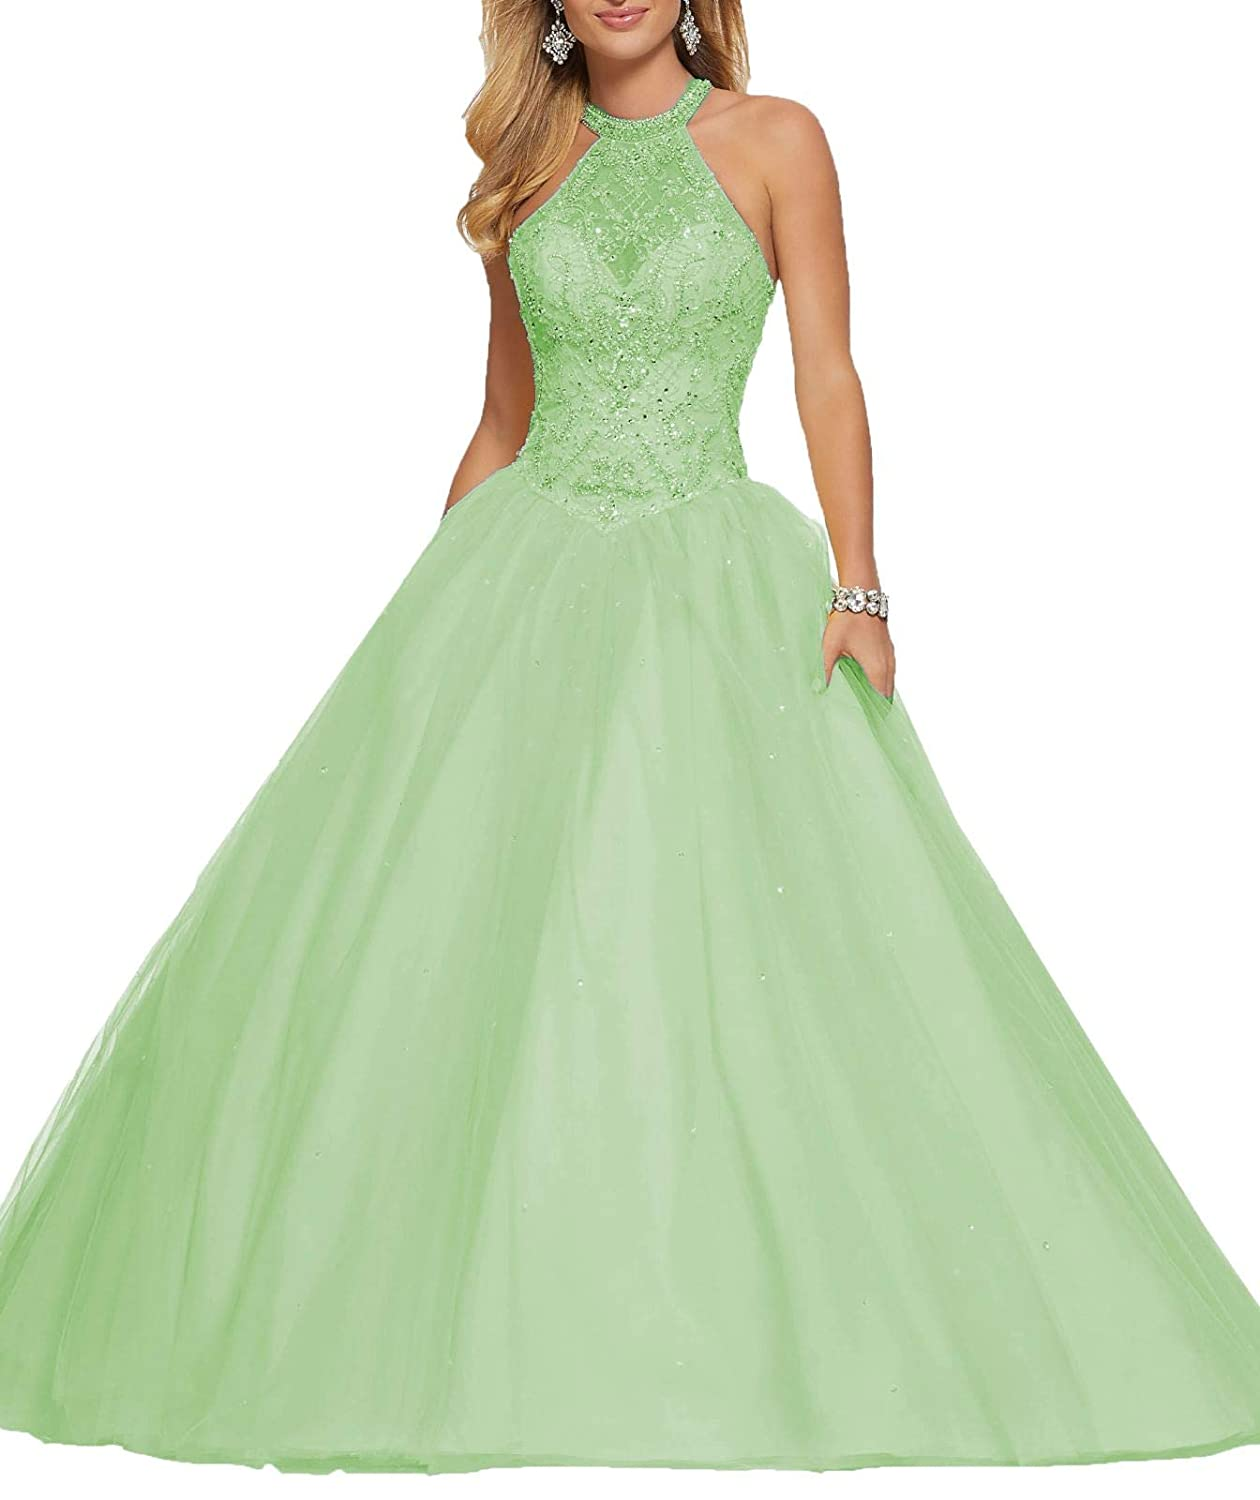 Green 1 Wanshaqin Women's High Neck Lace Prom Ball Gowns with Beading Appliques Quinceanera Dresses Tulle